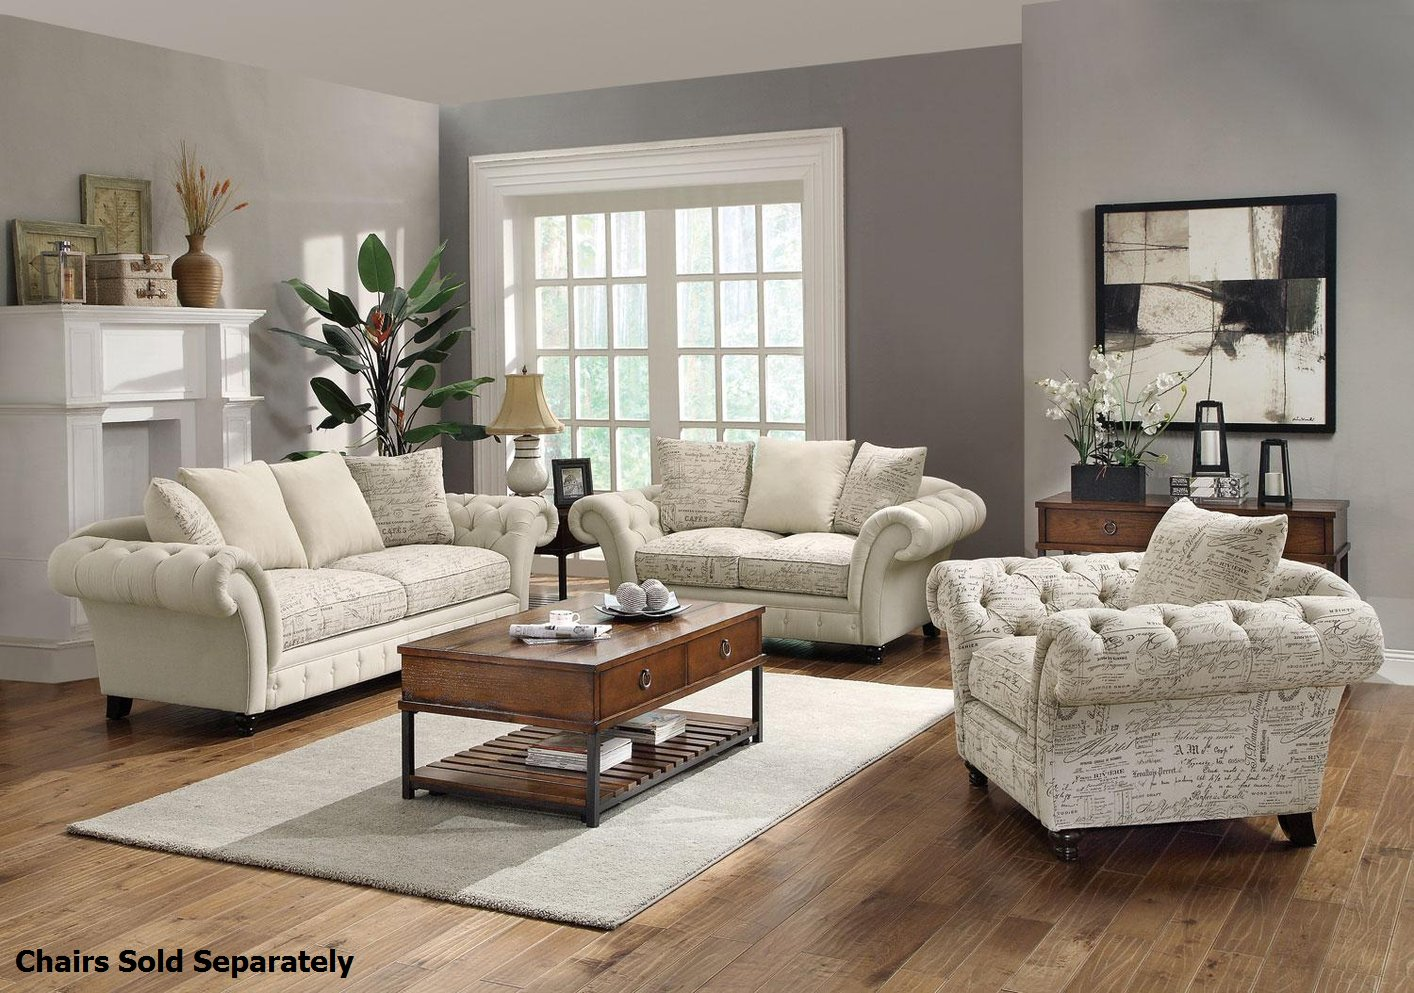 How To Set Up Your Living Room Coaster Willow 503761 503762 Beige Fabric Sofa And Loveseat Set